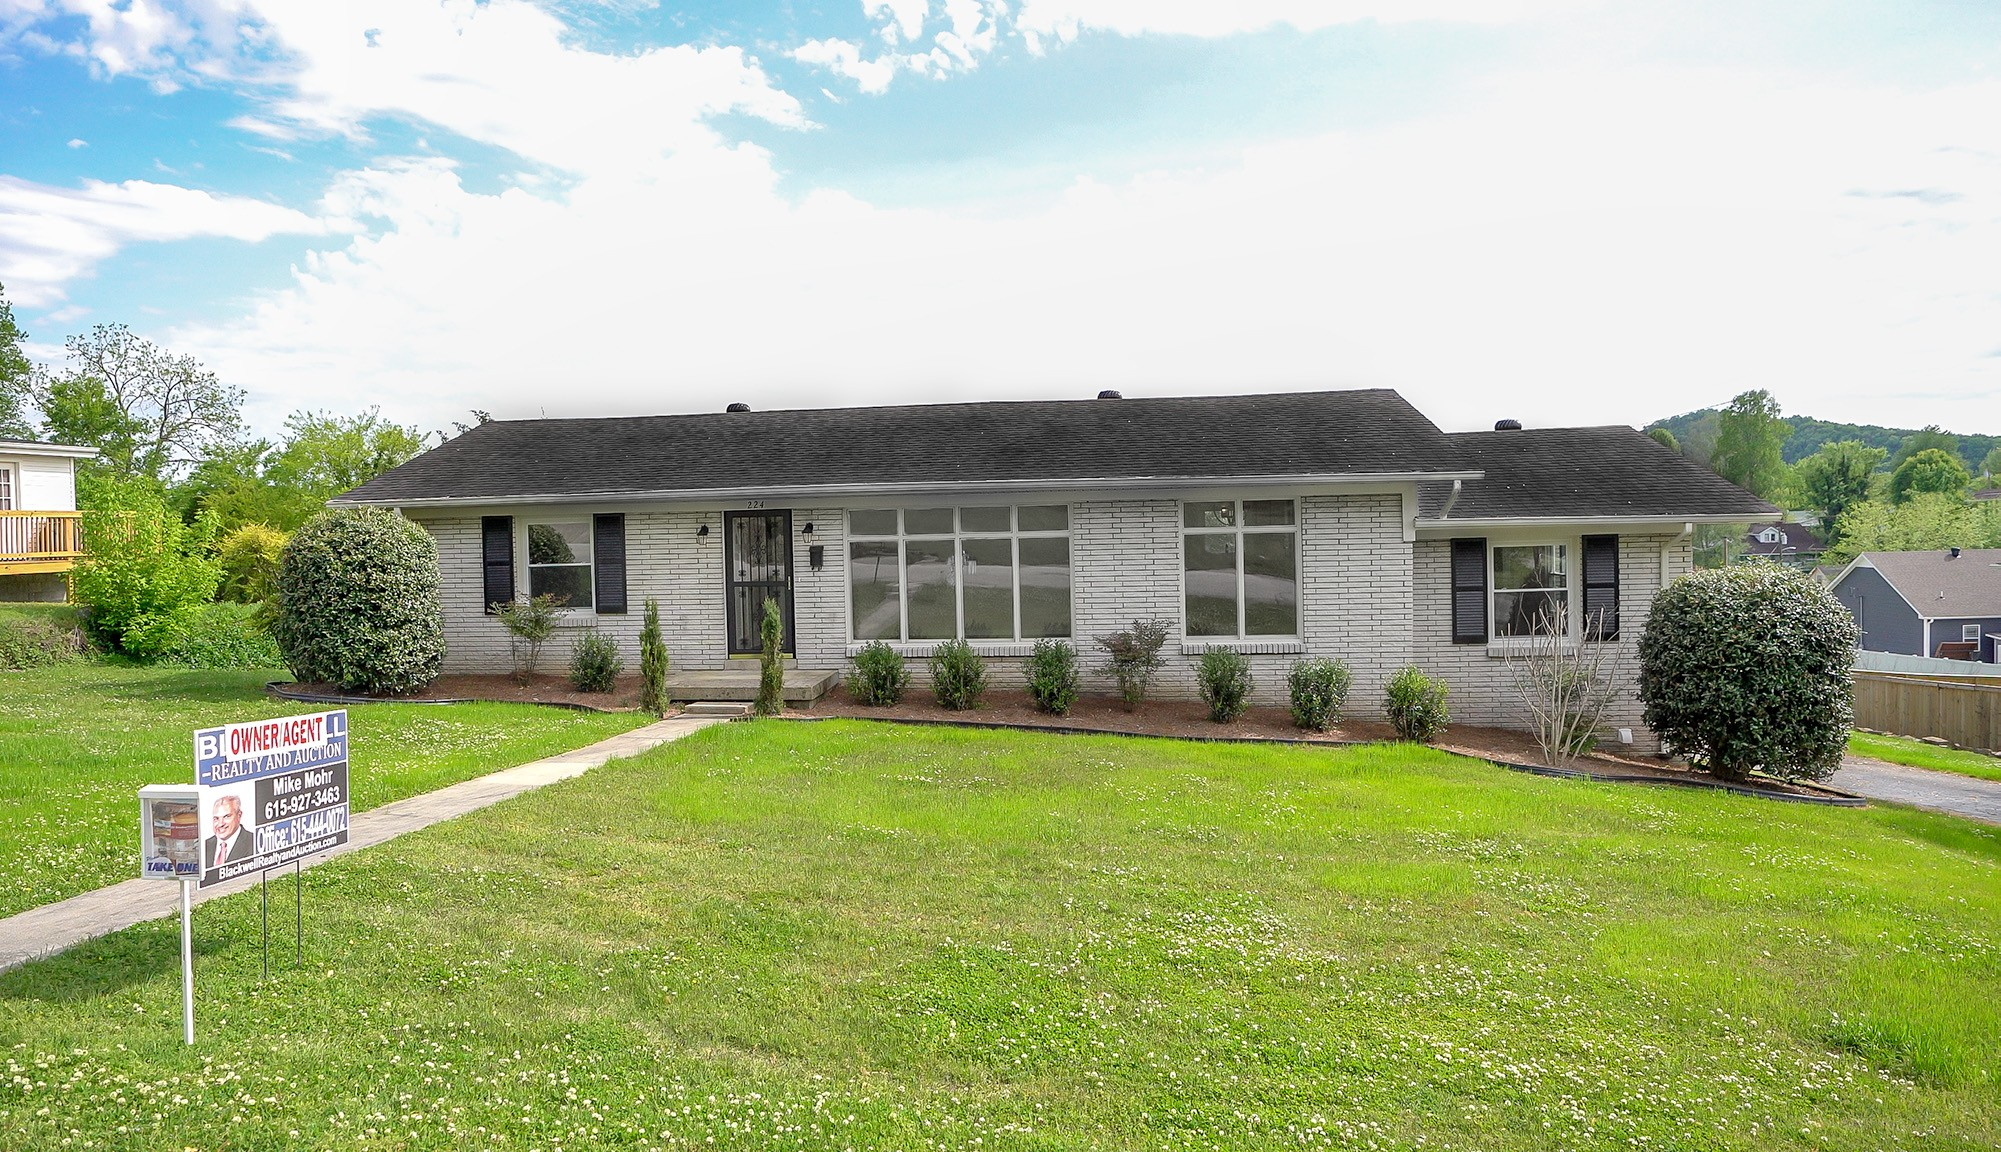 224 Smotherman Ave Property Photo - Carthage, TN real estate listing